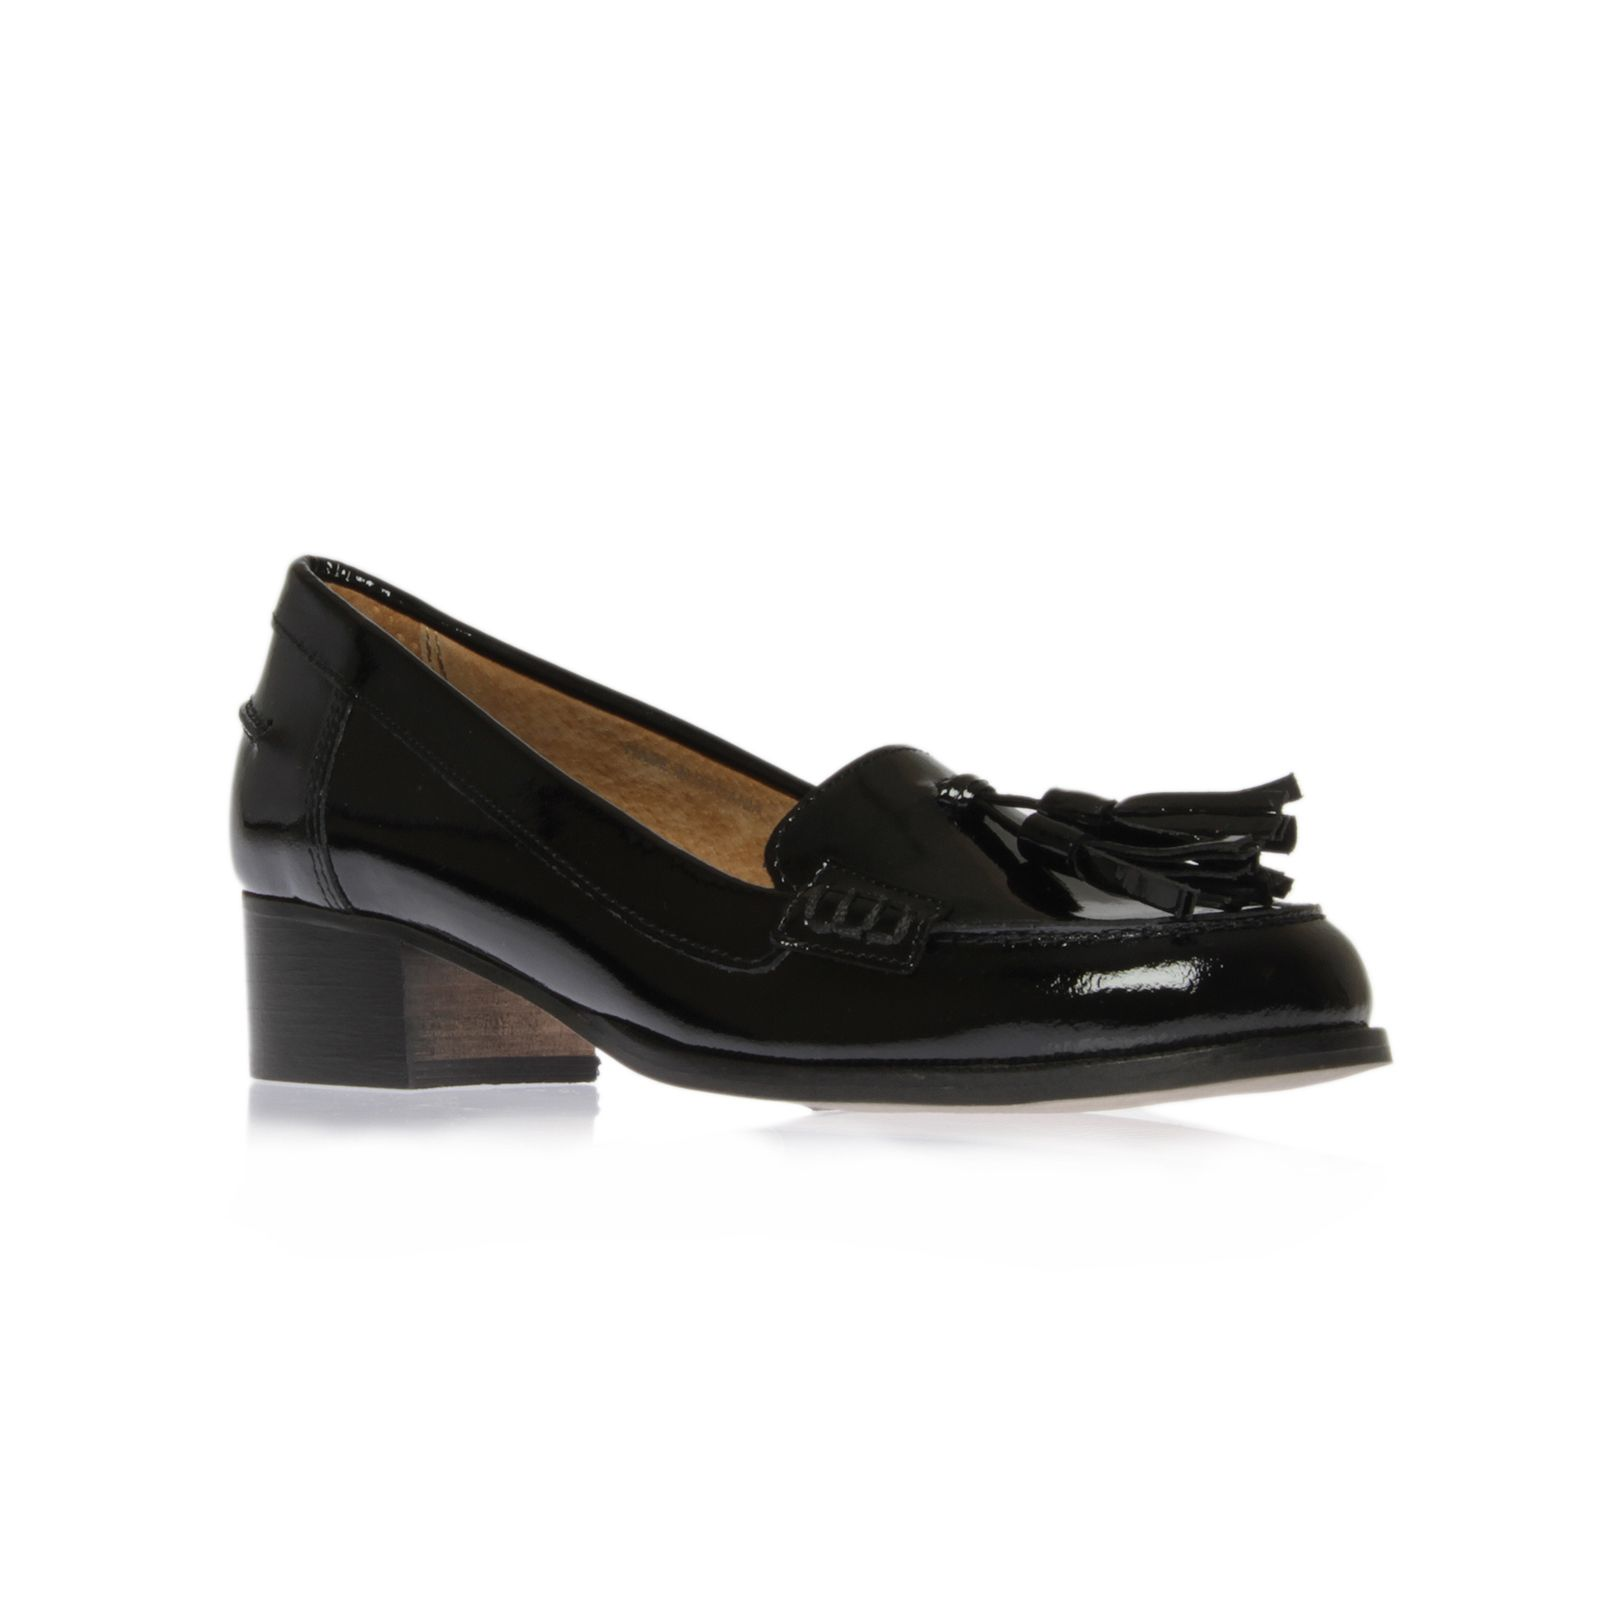 Lexie Loafer Shoes